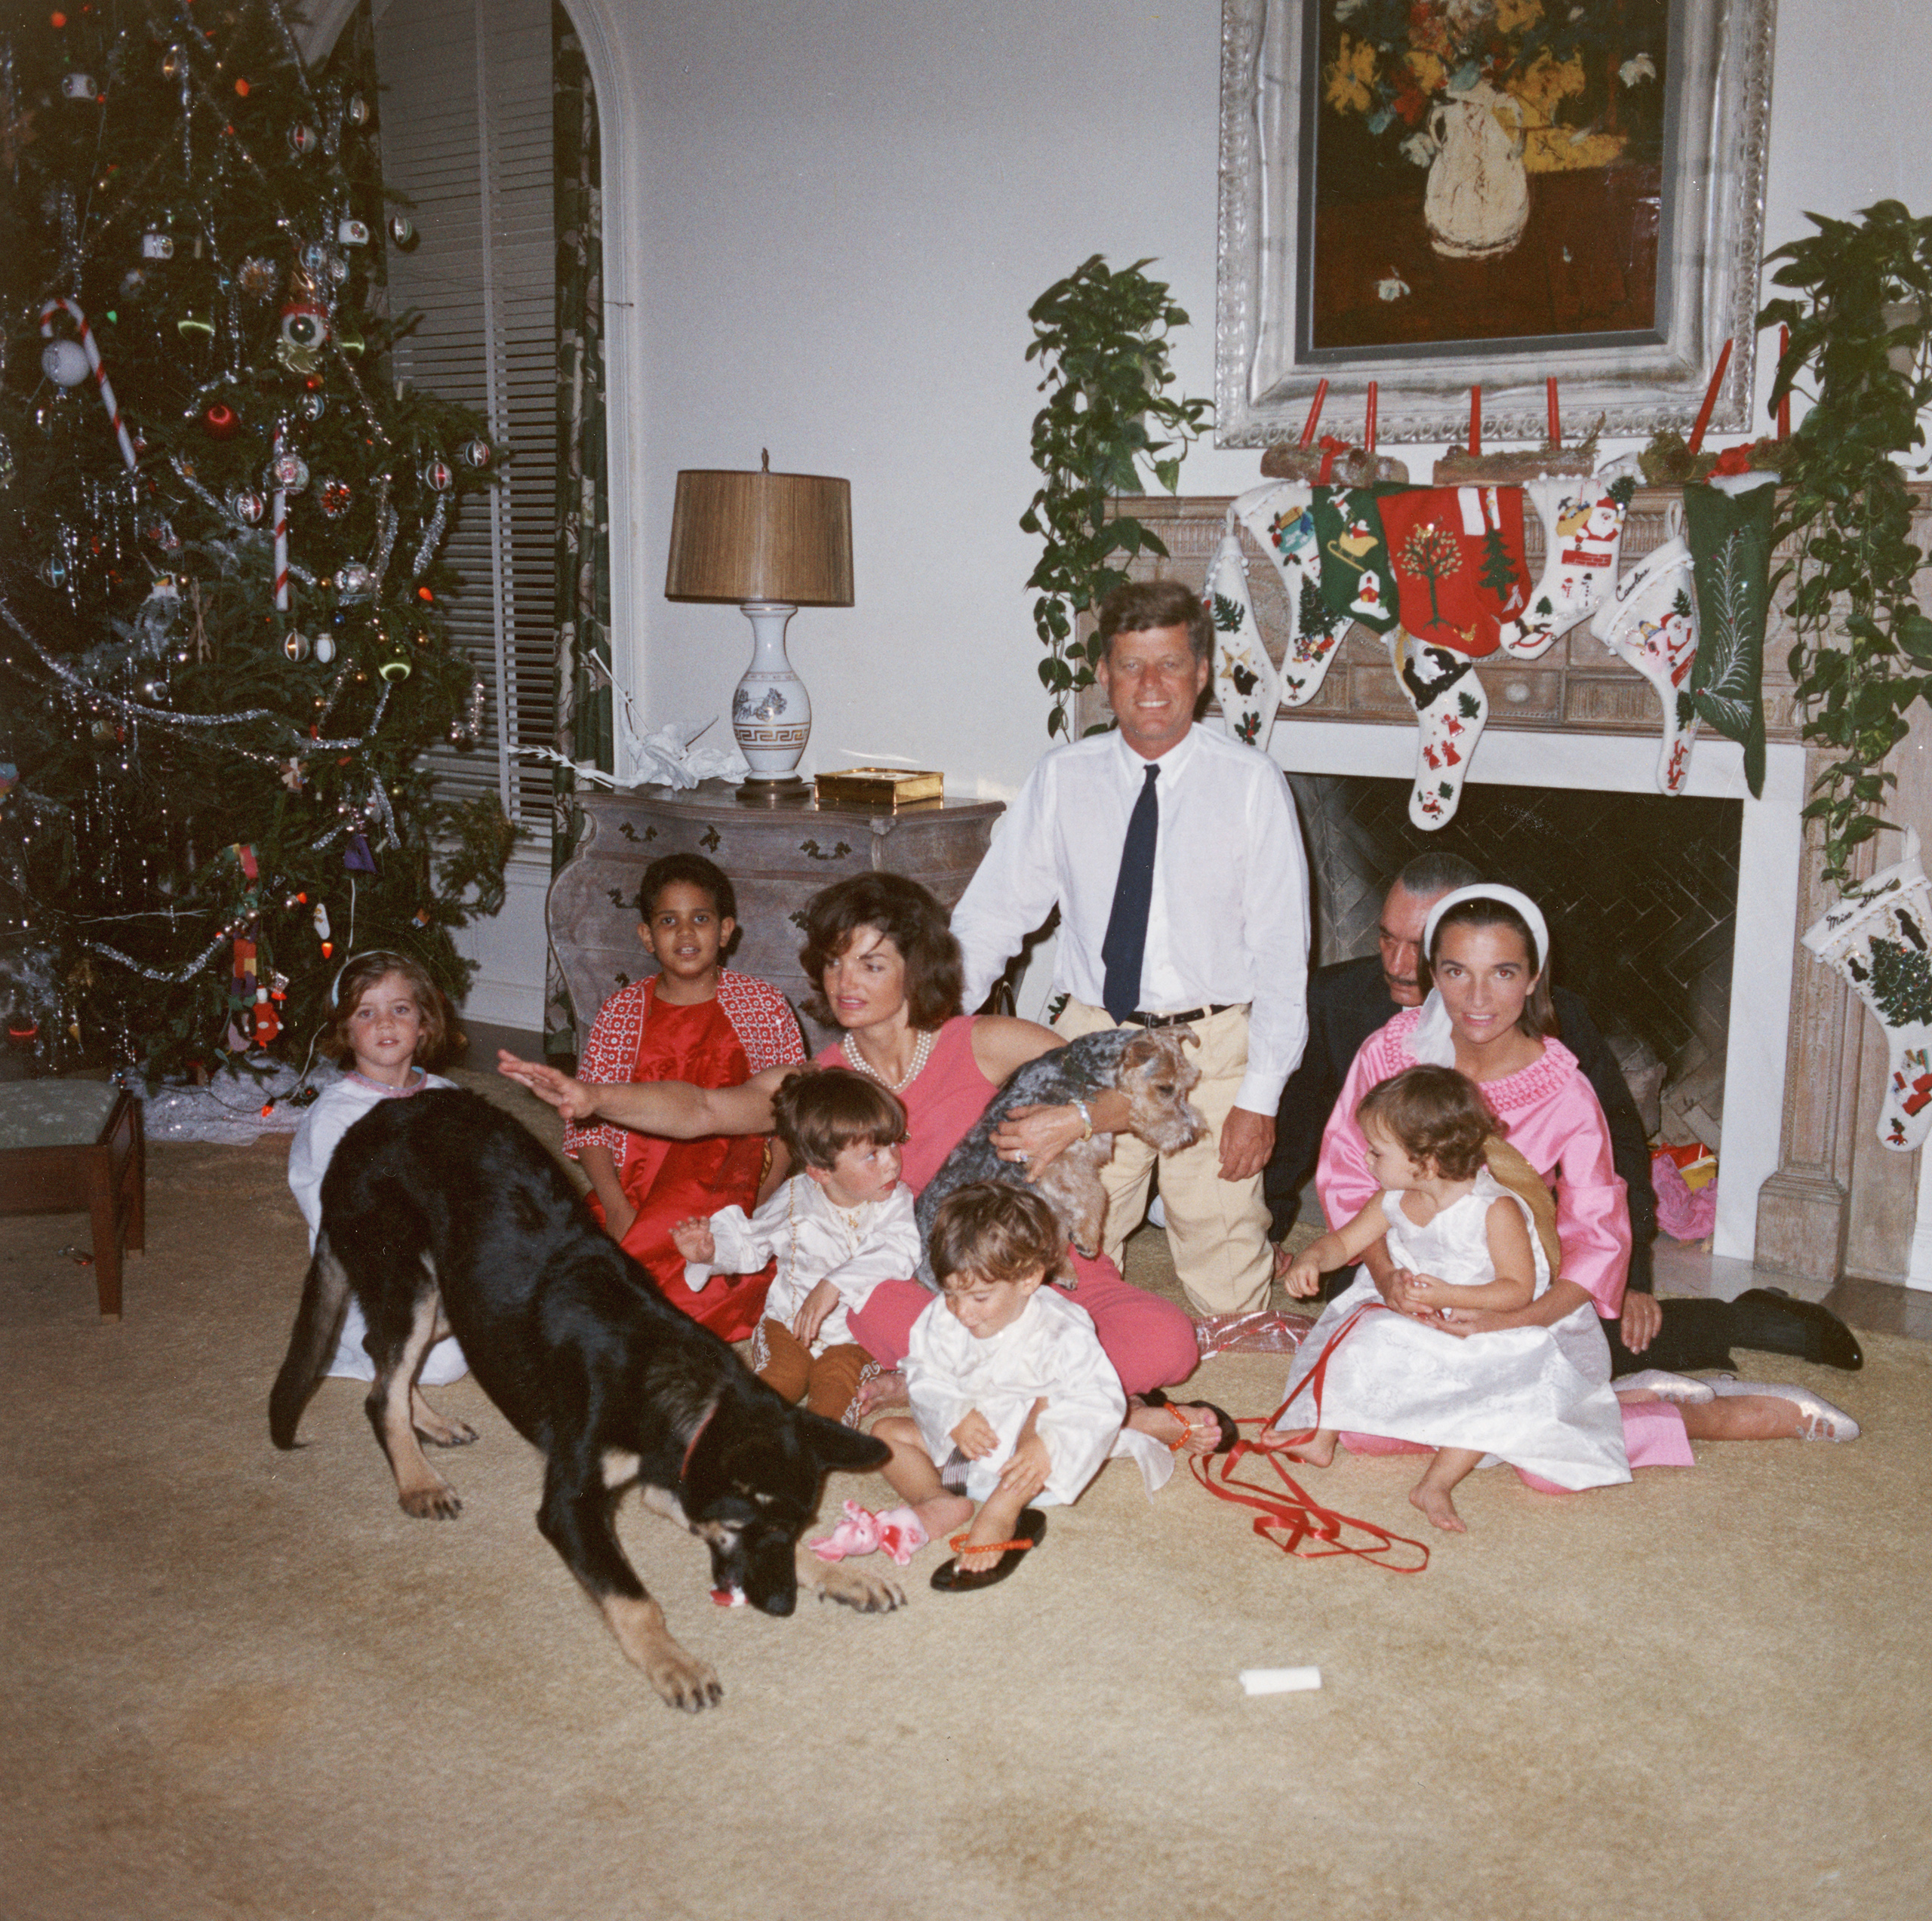 John F. Kennedy and  Jacqueline Kennedy pose with their family on Christmas Day at the White House, Dec. 25, 1962.